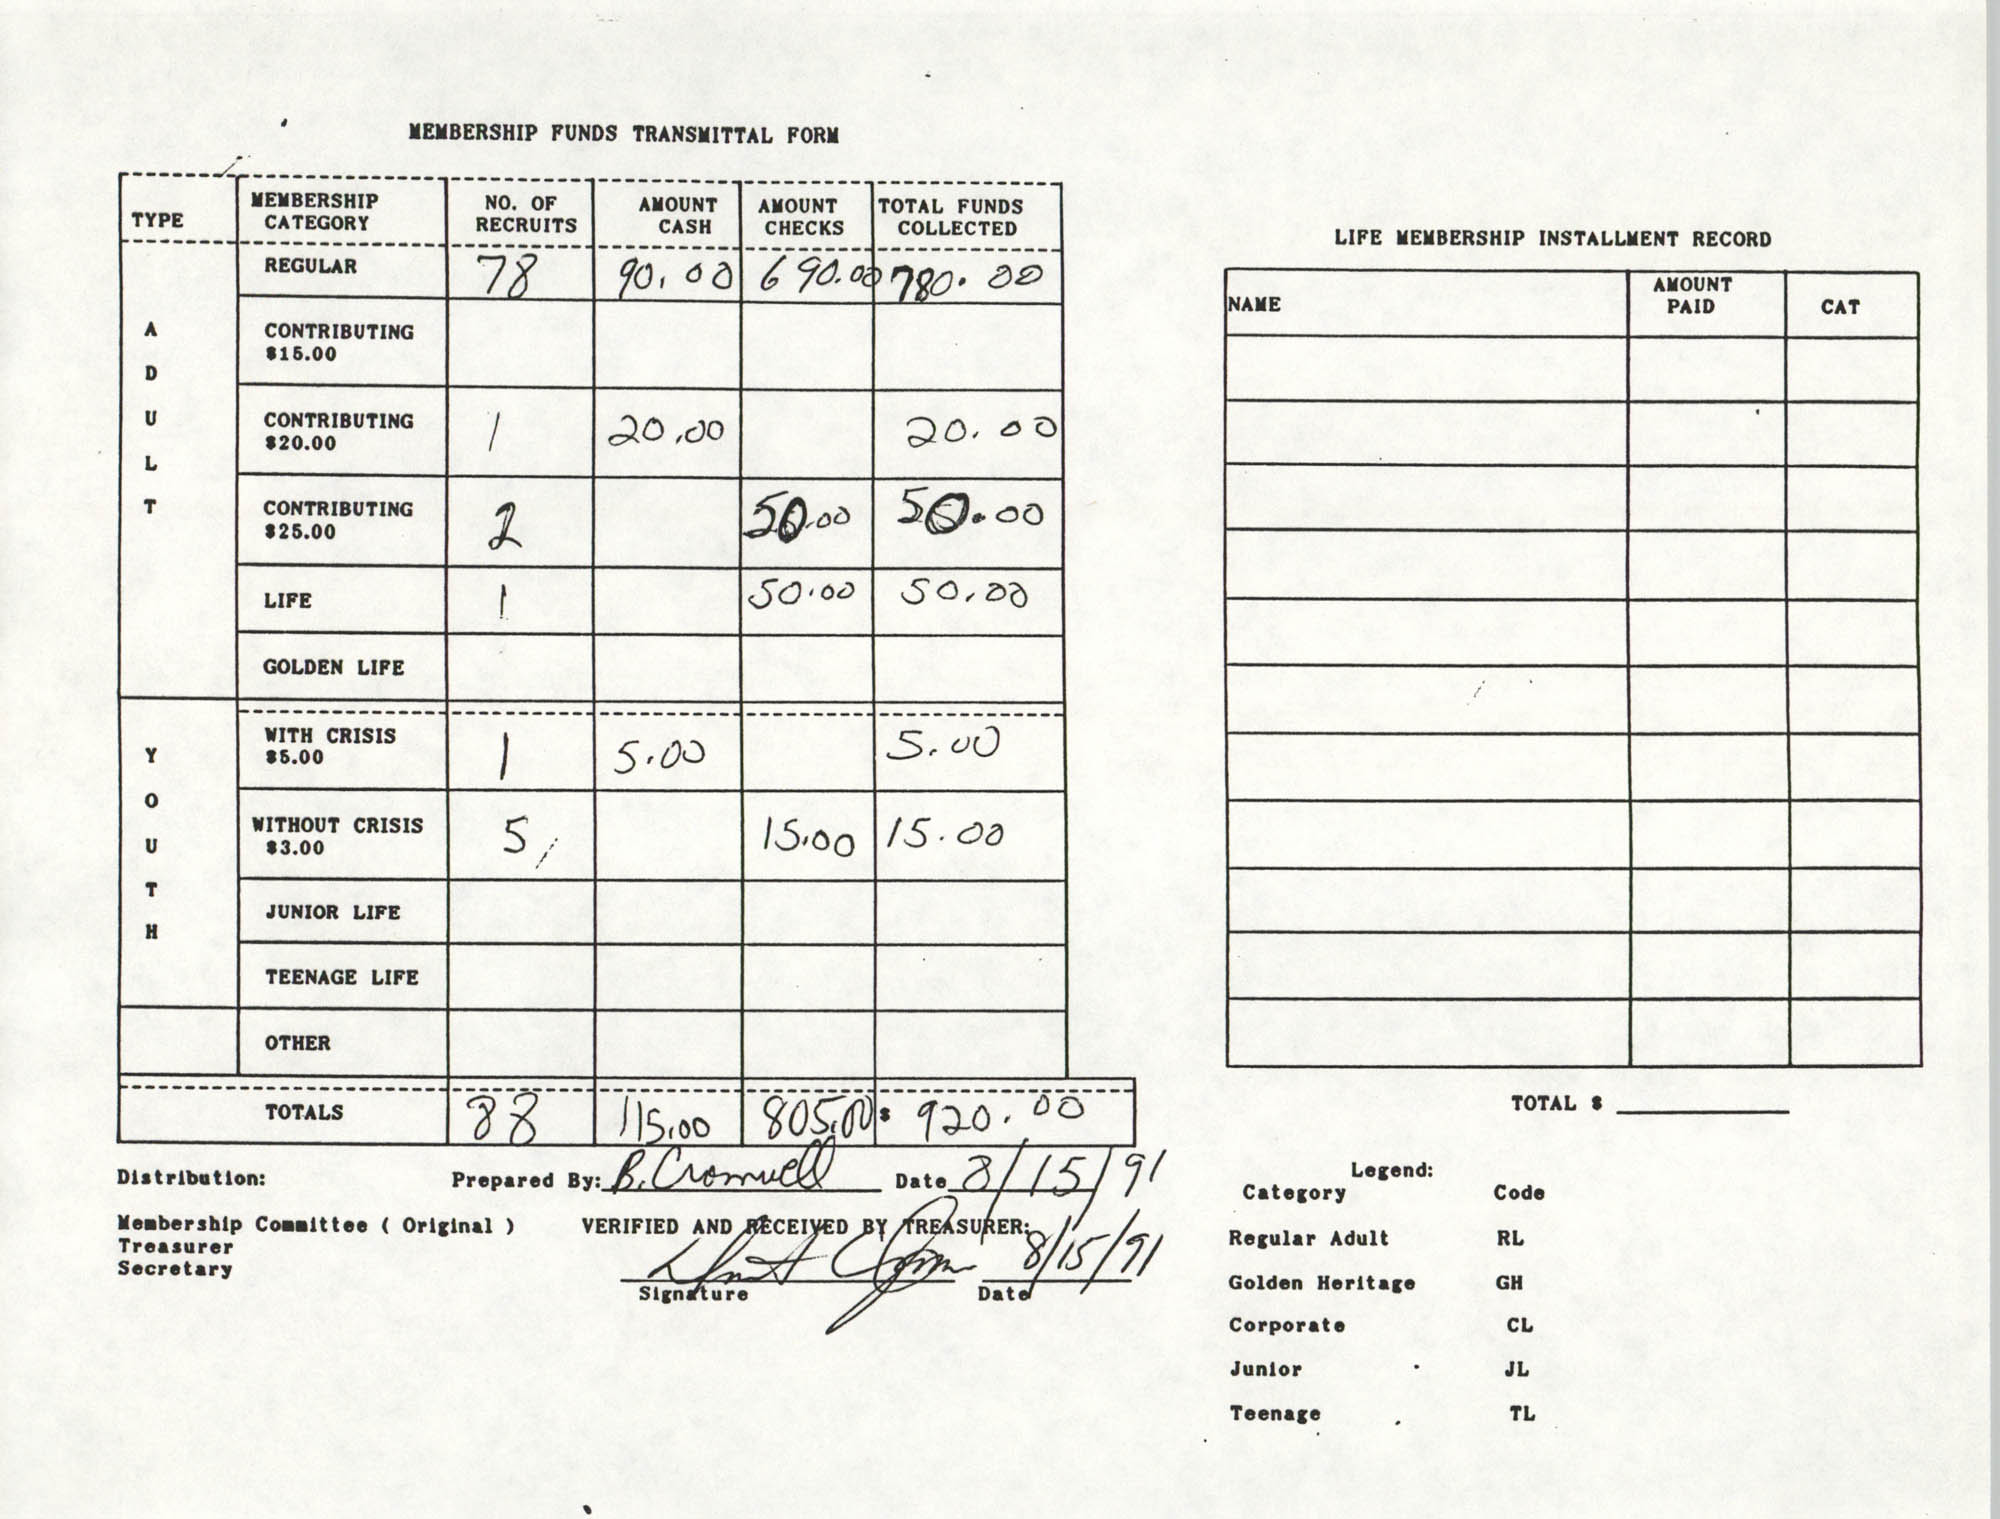 Charleston Branch of the NAACP Funds Transmittal Forms, August 1991, Page 2